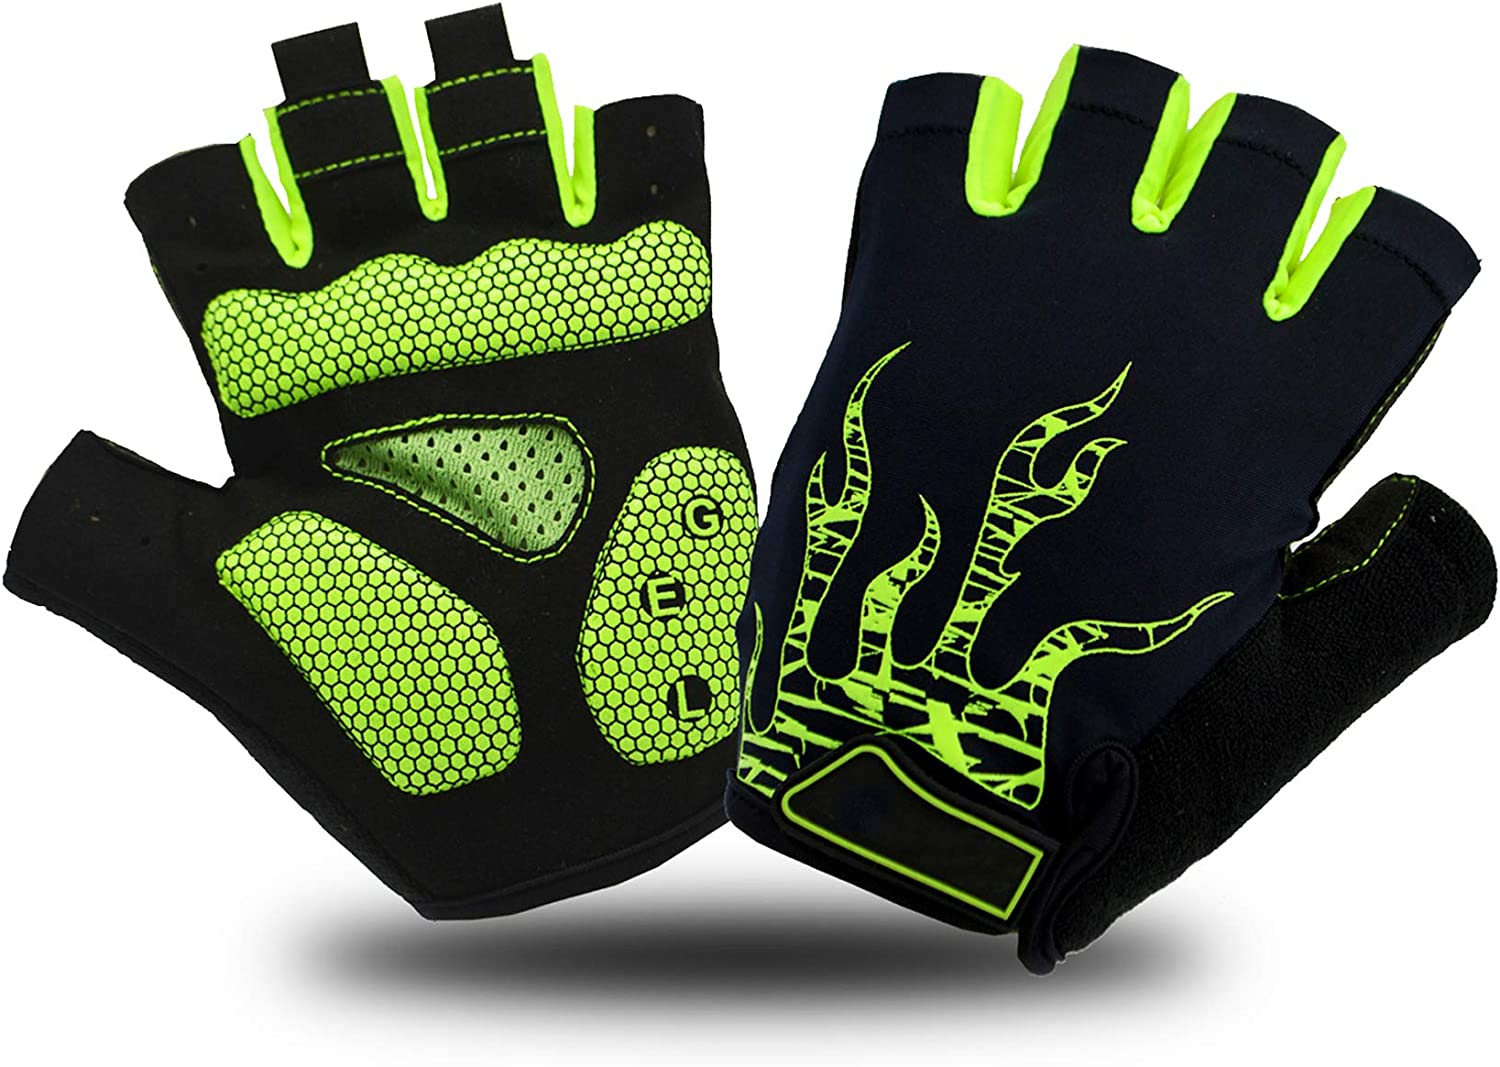 BLONGW Cycling Gloves for Men Women SEAL limited product Riding Bicy Road Max 81% OFF Half Finger